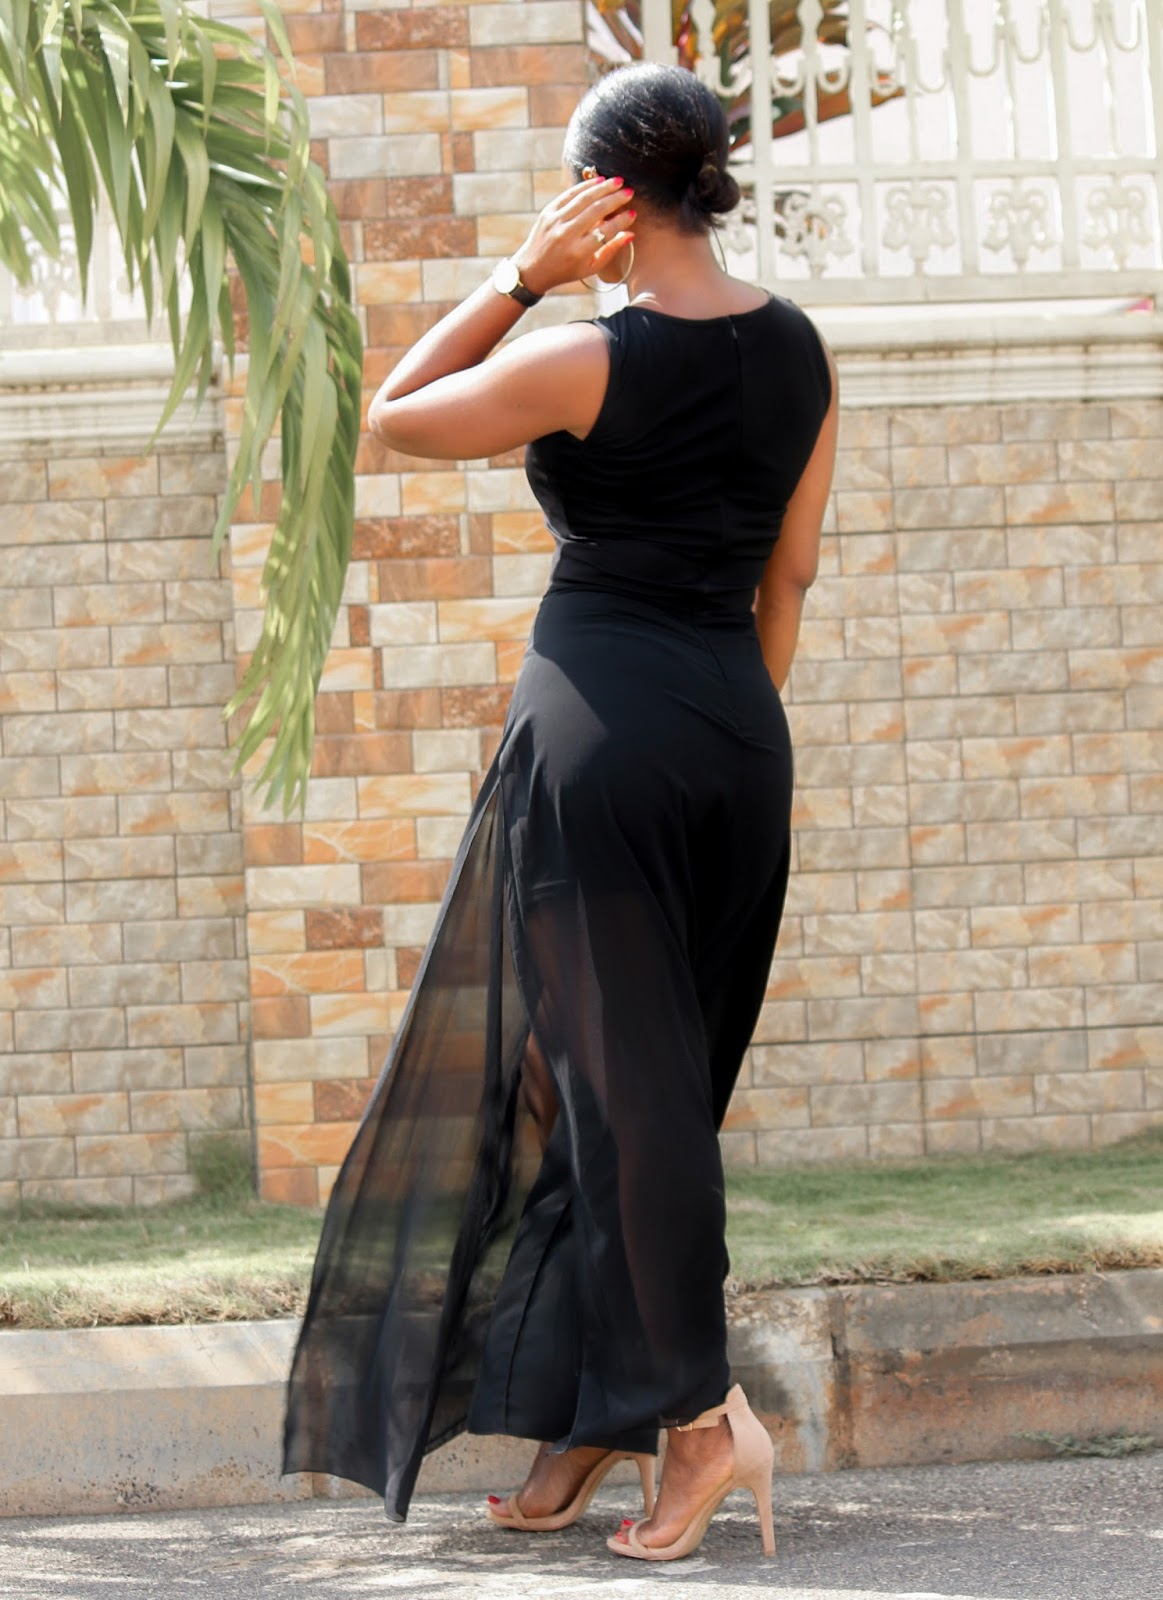 SHEER MAXI DRESS -  Side Slit Sheer Maxi Dress from Gamiss